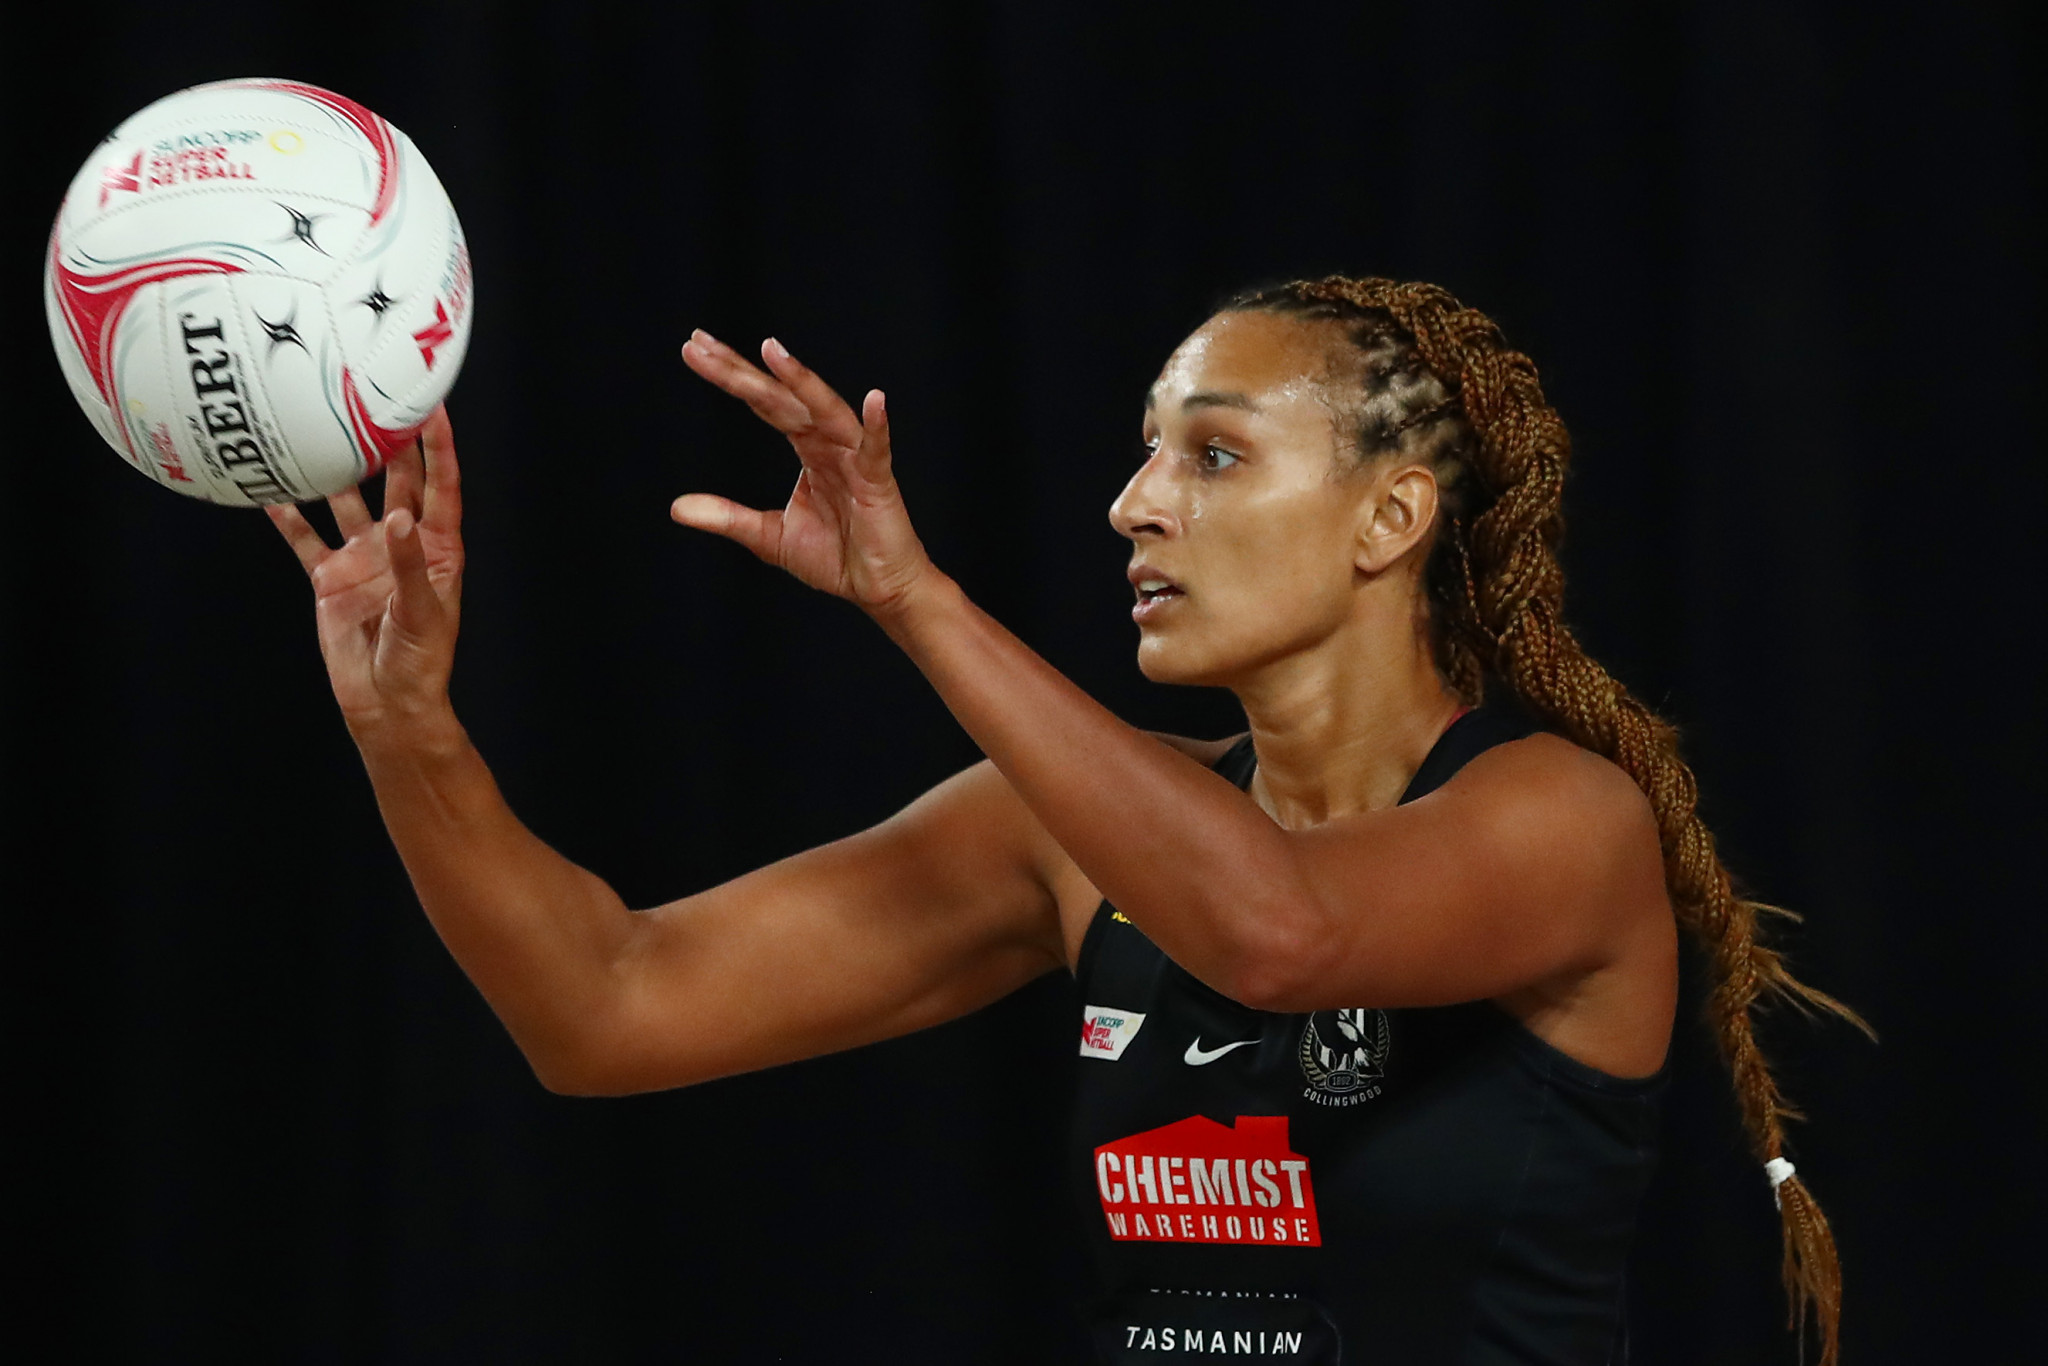 England's Geva Mentor to return to Australia from New Zealand next week after travel fears